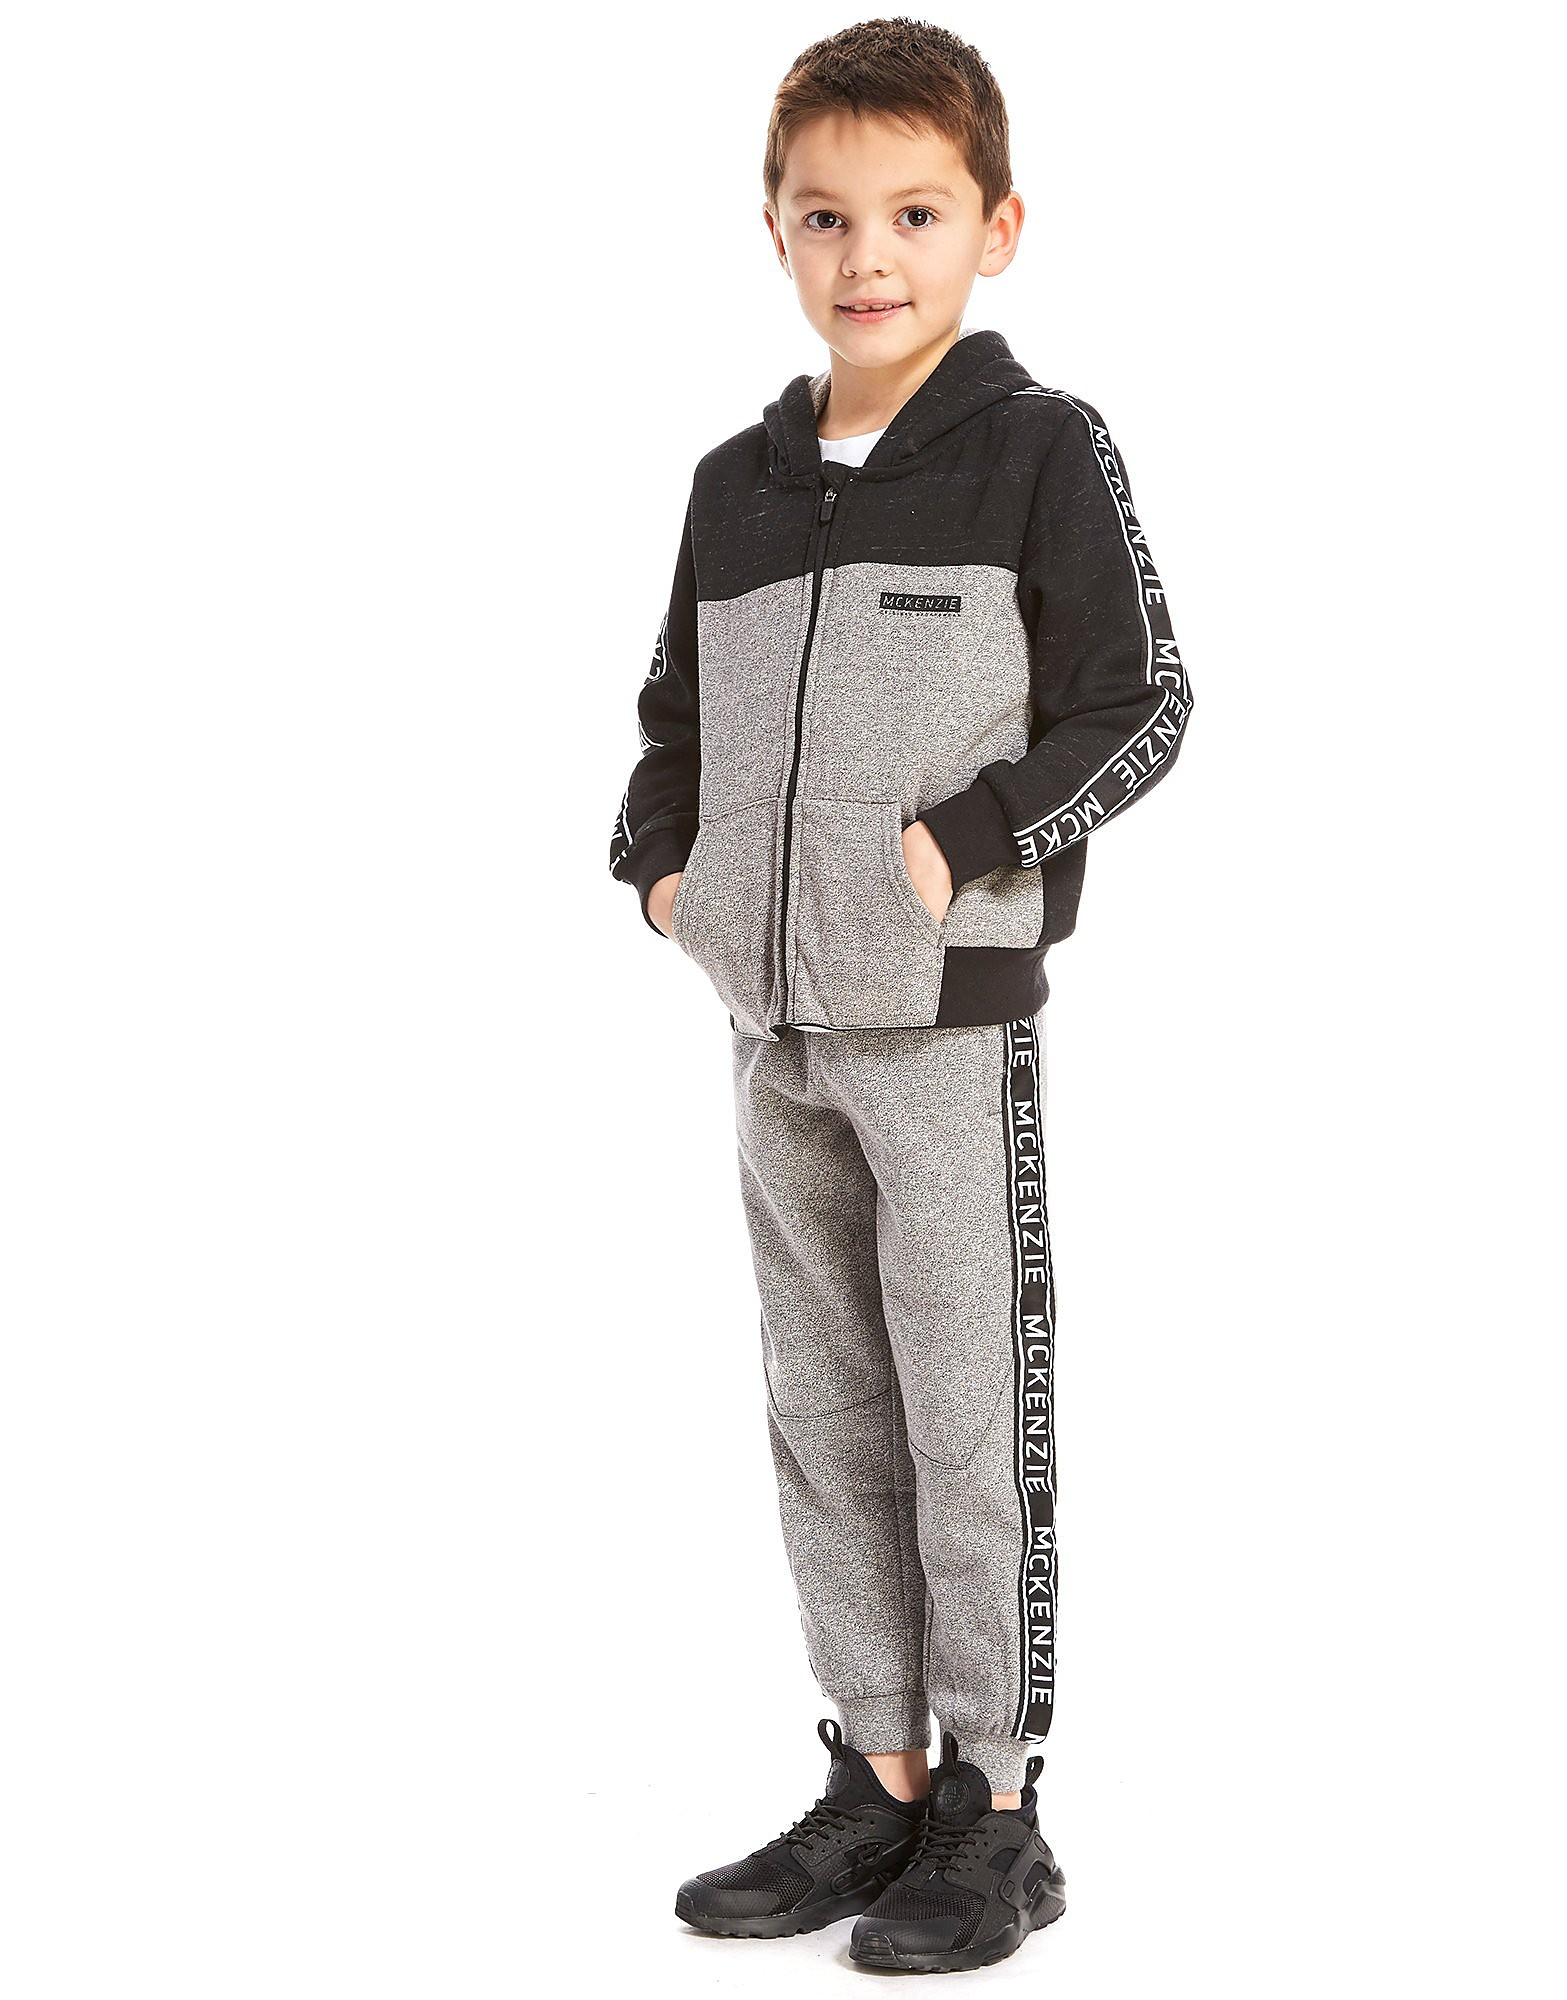 McKenzie Benson Full Zip Suit Children